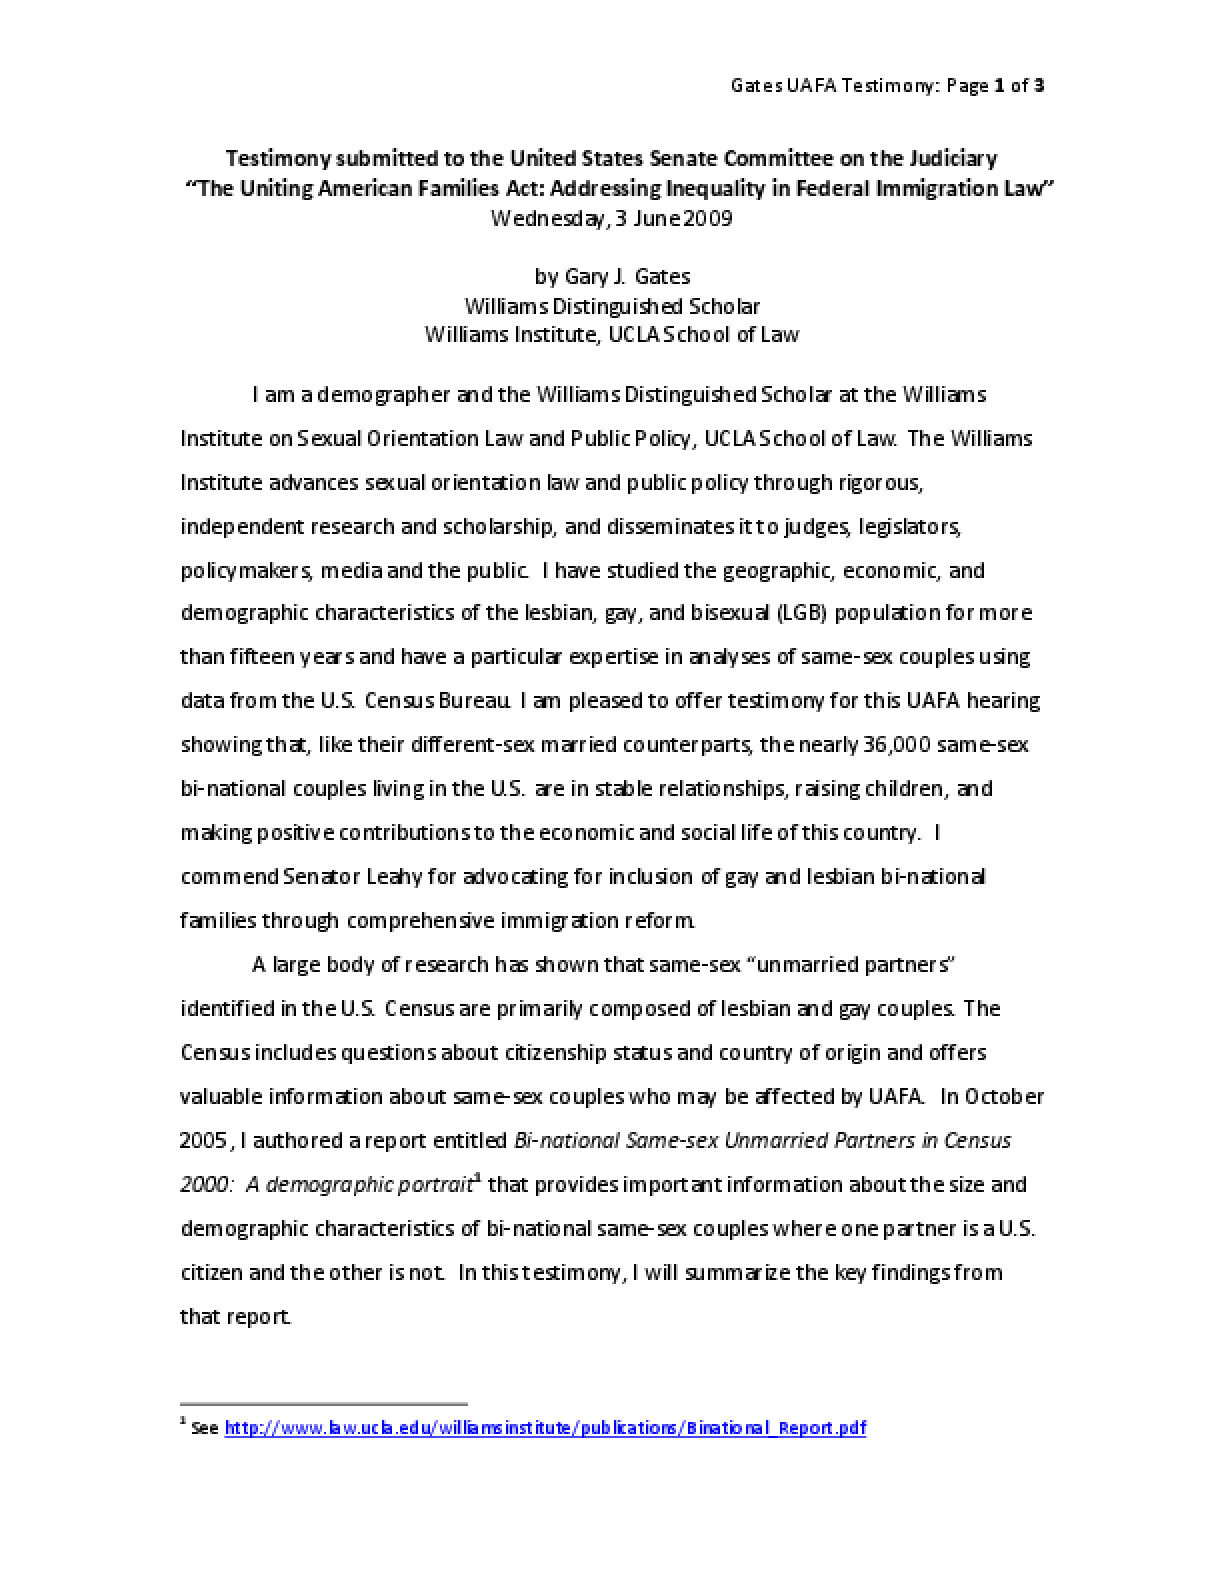 Testimony Submitted to the United States Senate Committee on the Judiciary: The Uniting American Families Act, Addressing Inequality in Federal Immigration Law